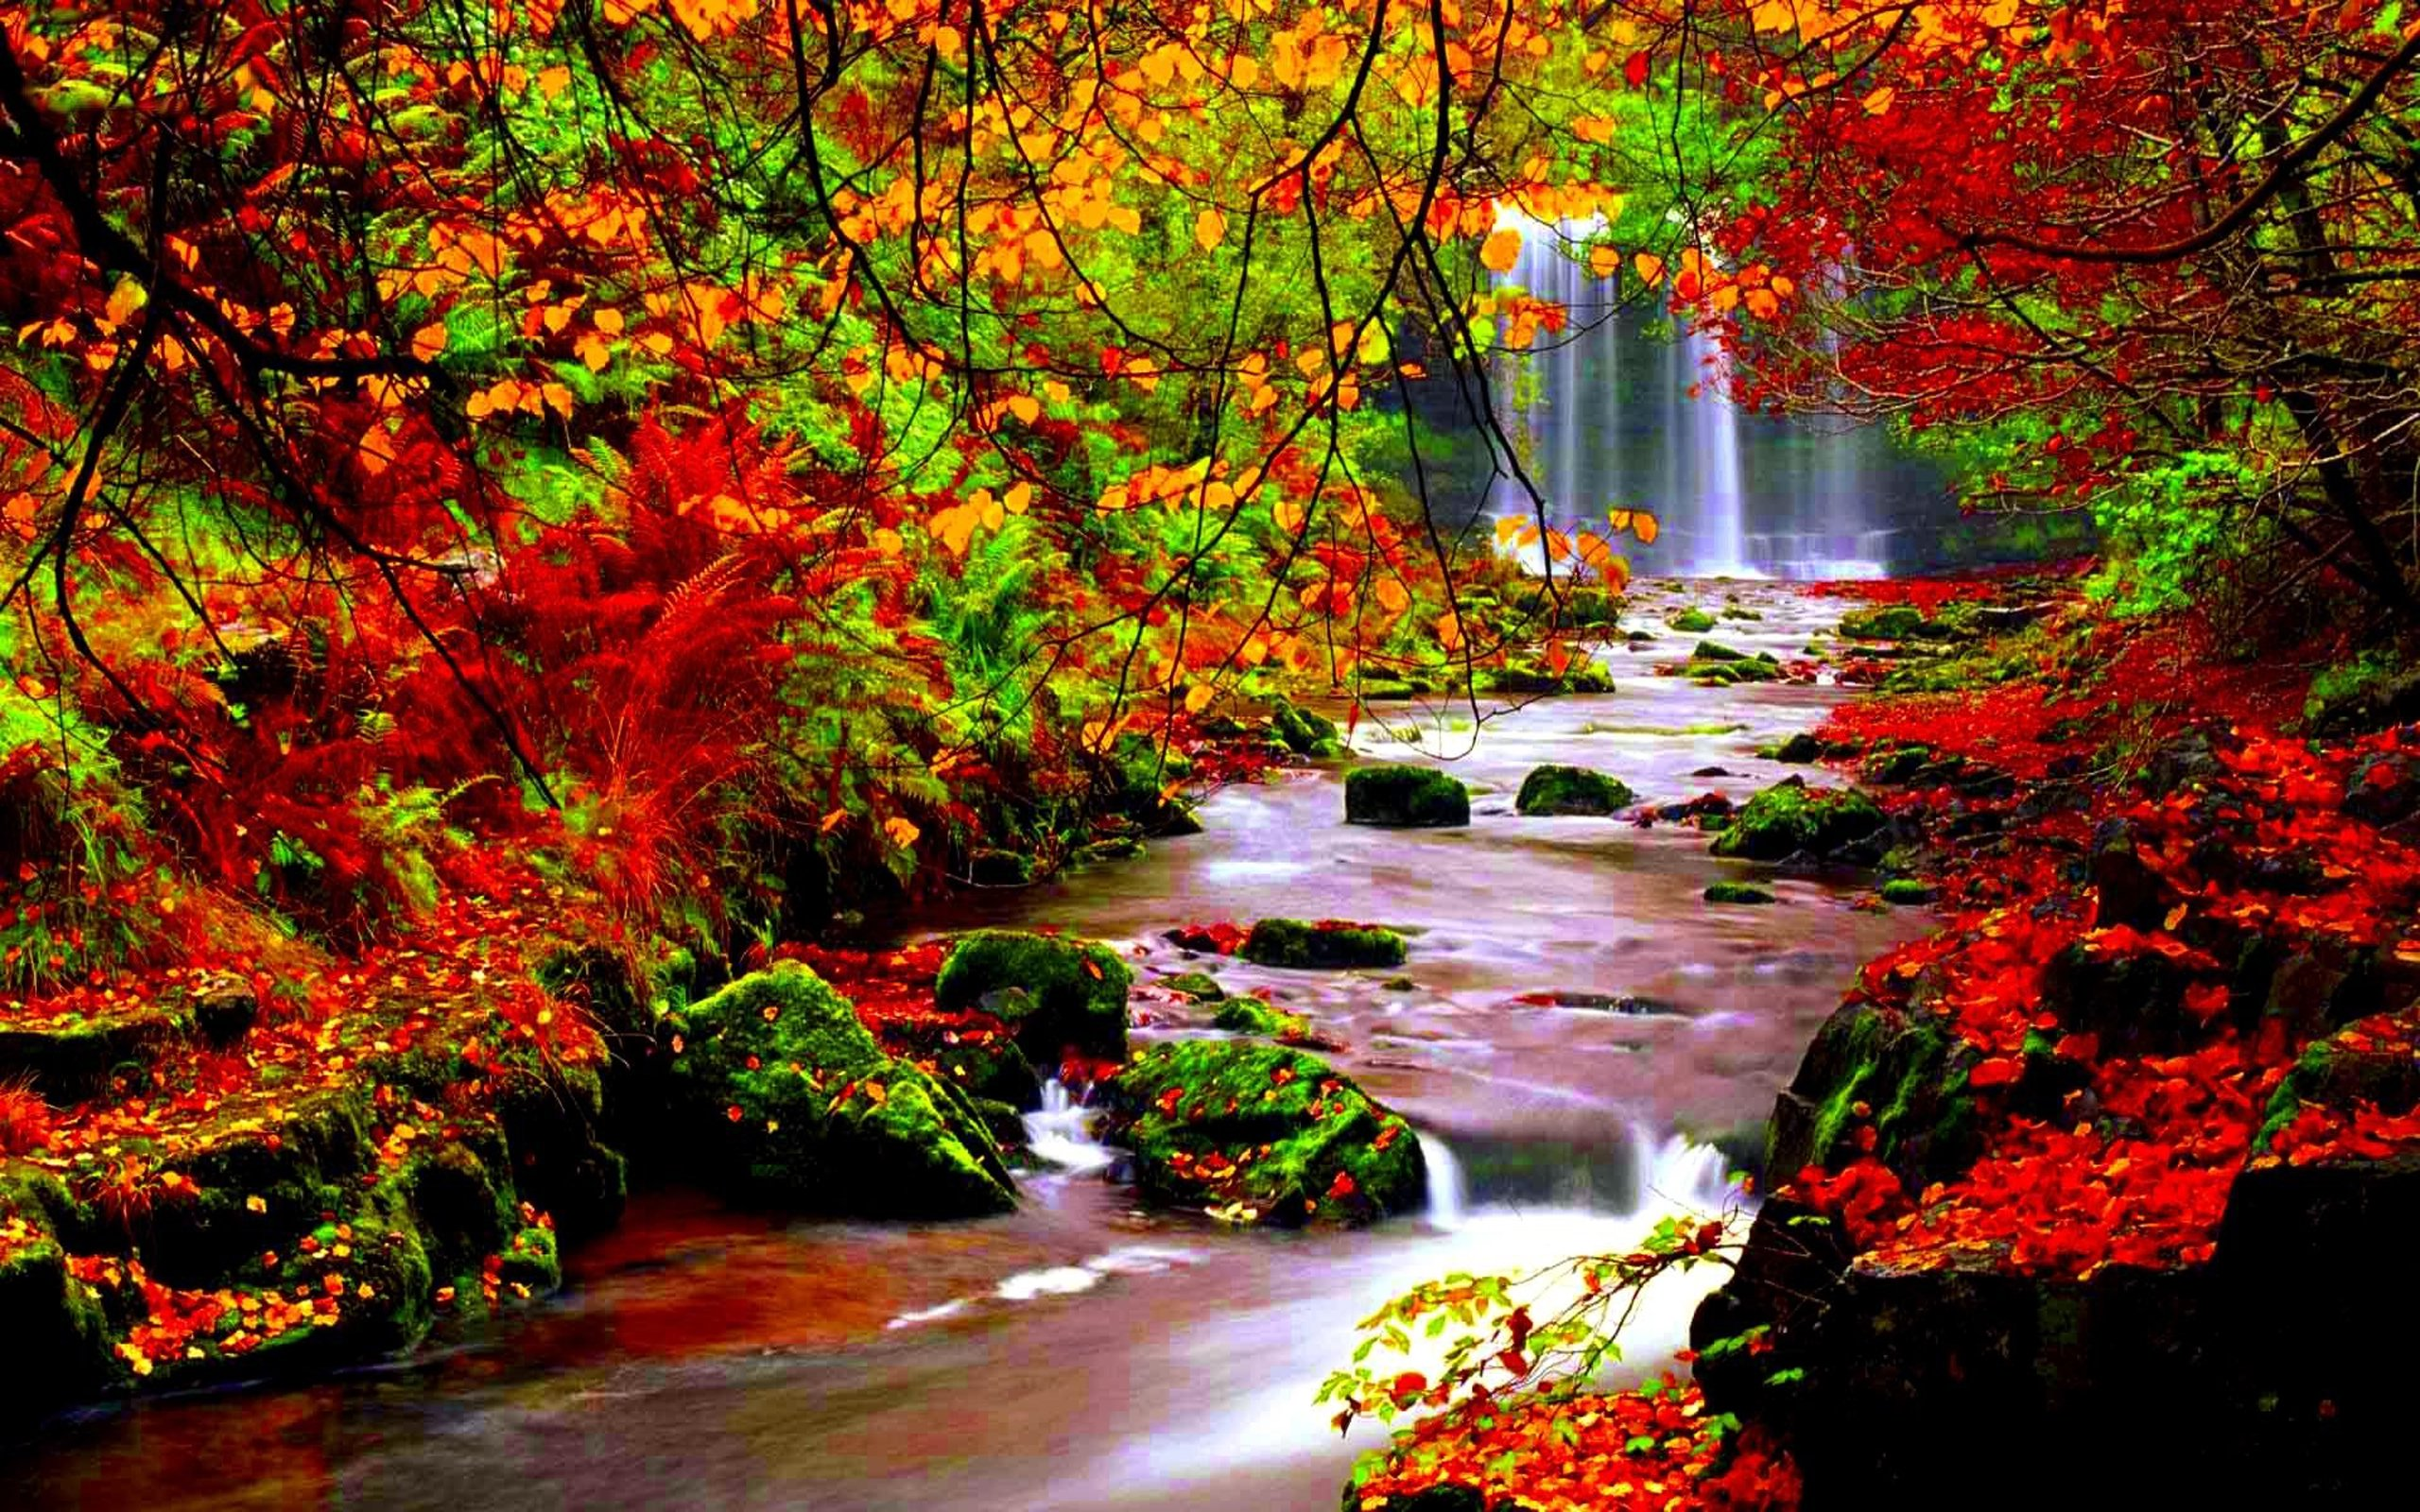 Autumn River Wallpaper Full Hd Autumn River Wallpaper   Fall 2560x1600